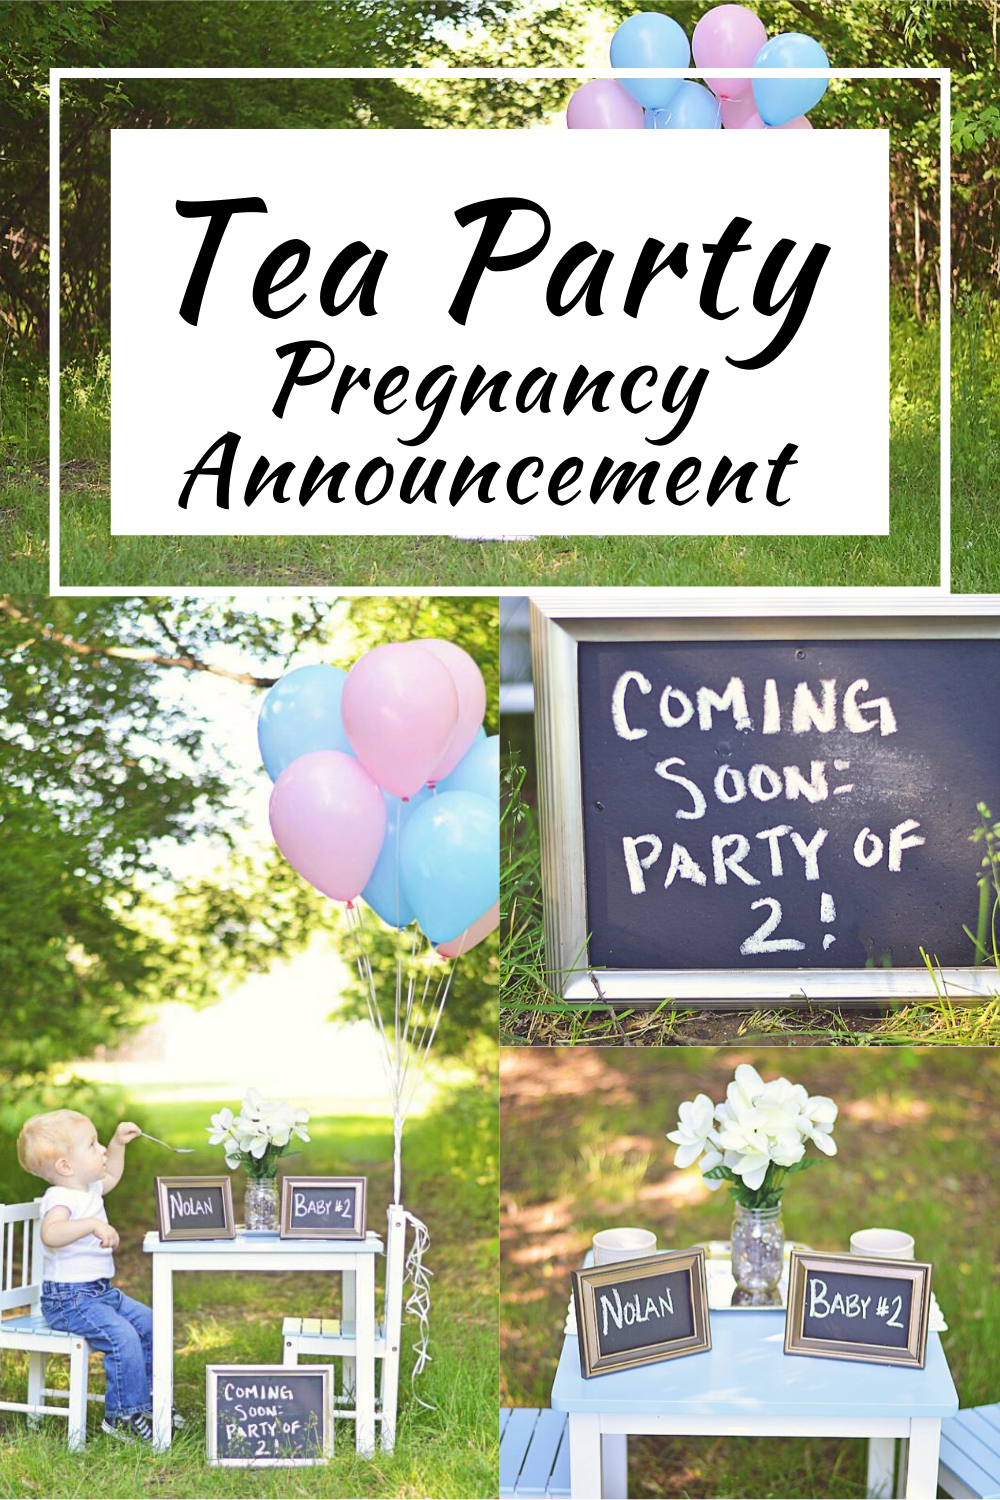 Tea Party Pregnancy Announcement